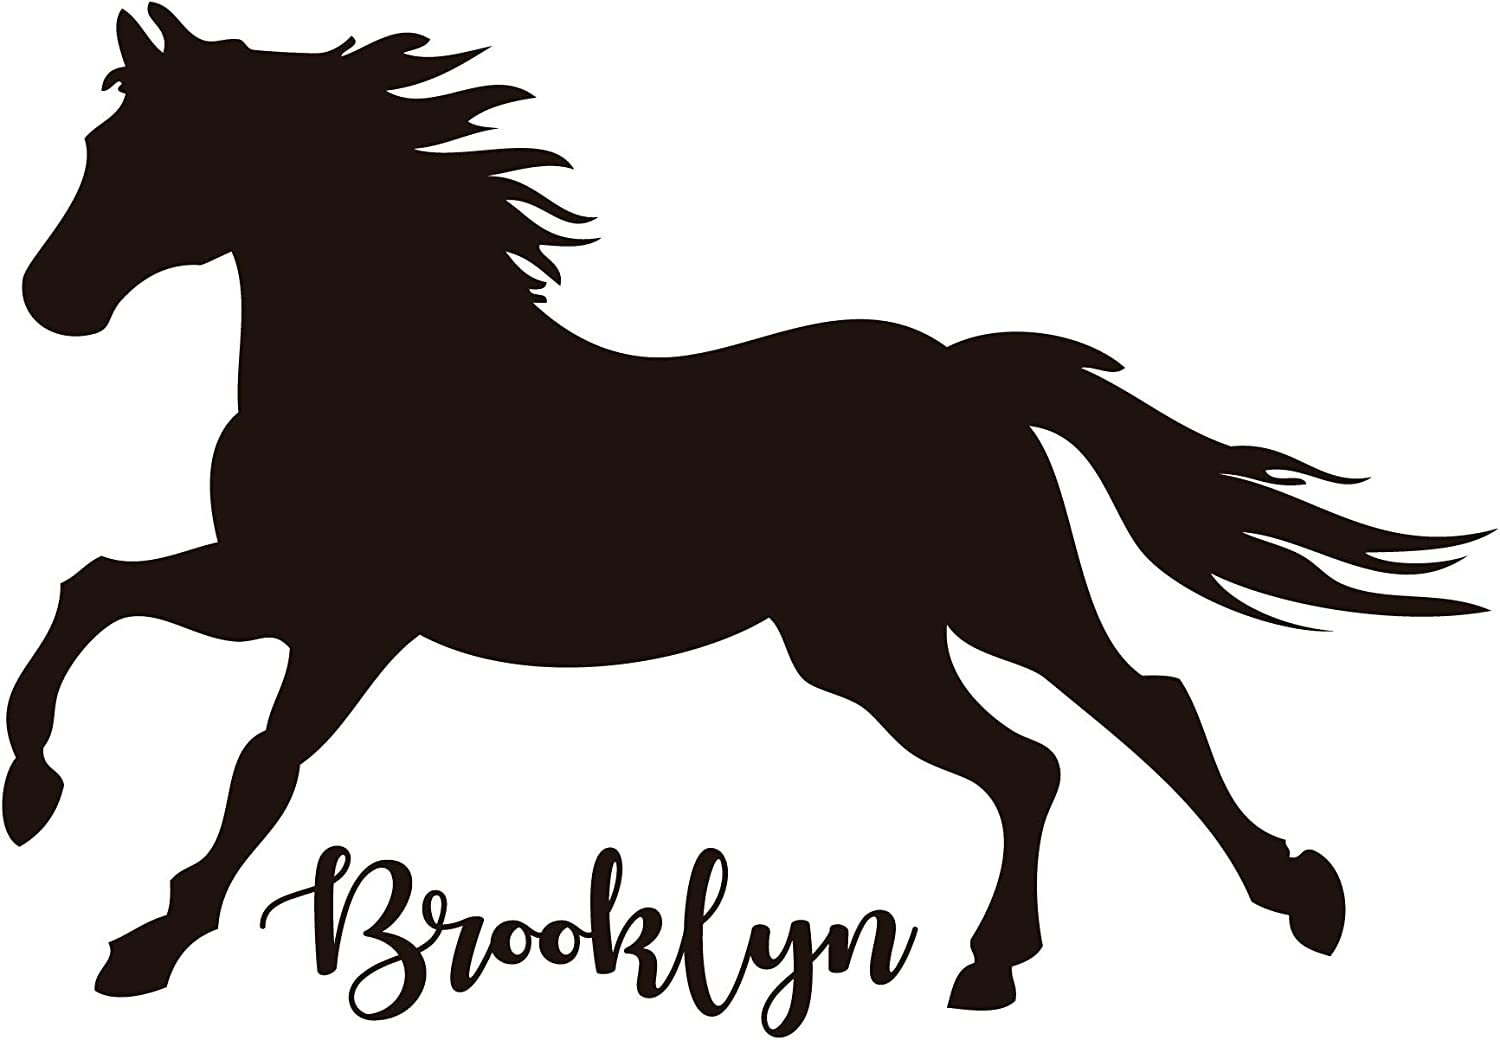 Room Wall Decor - Horse with Personalized Name Vinyl Decal Stickers for Home in Girls or Boys Bedroom, Playroom, Bathroom or Nursery - Custom Sizes and Colors Match The Theme of Any Living Space